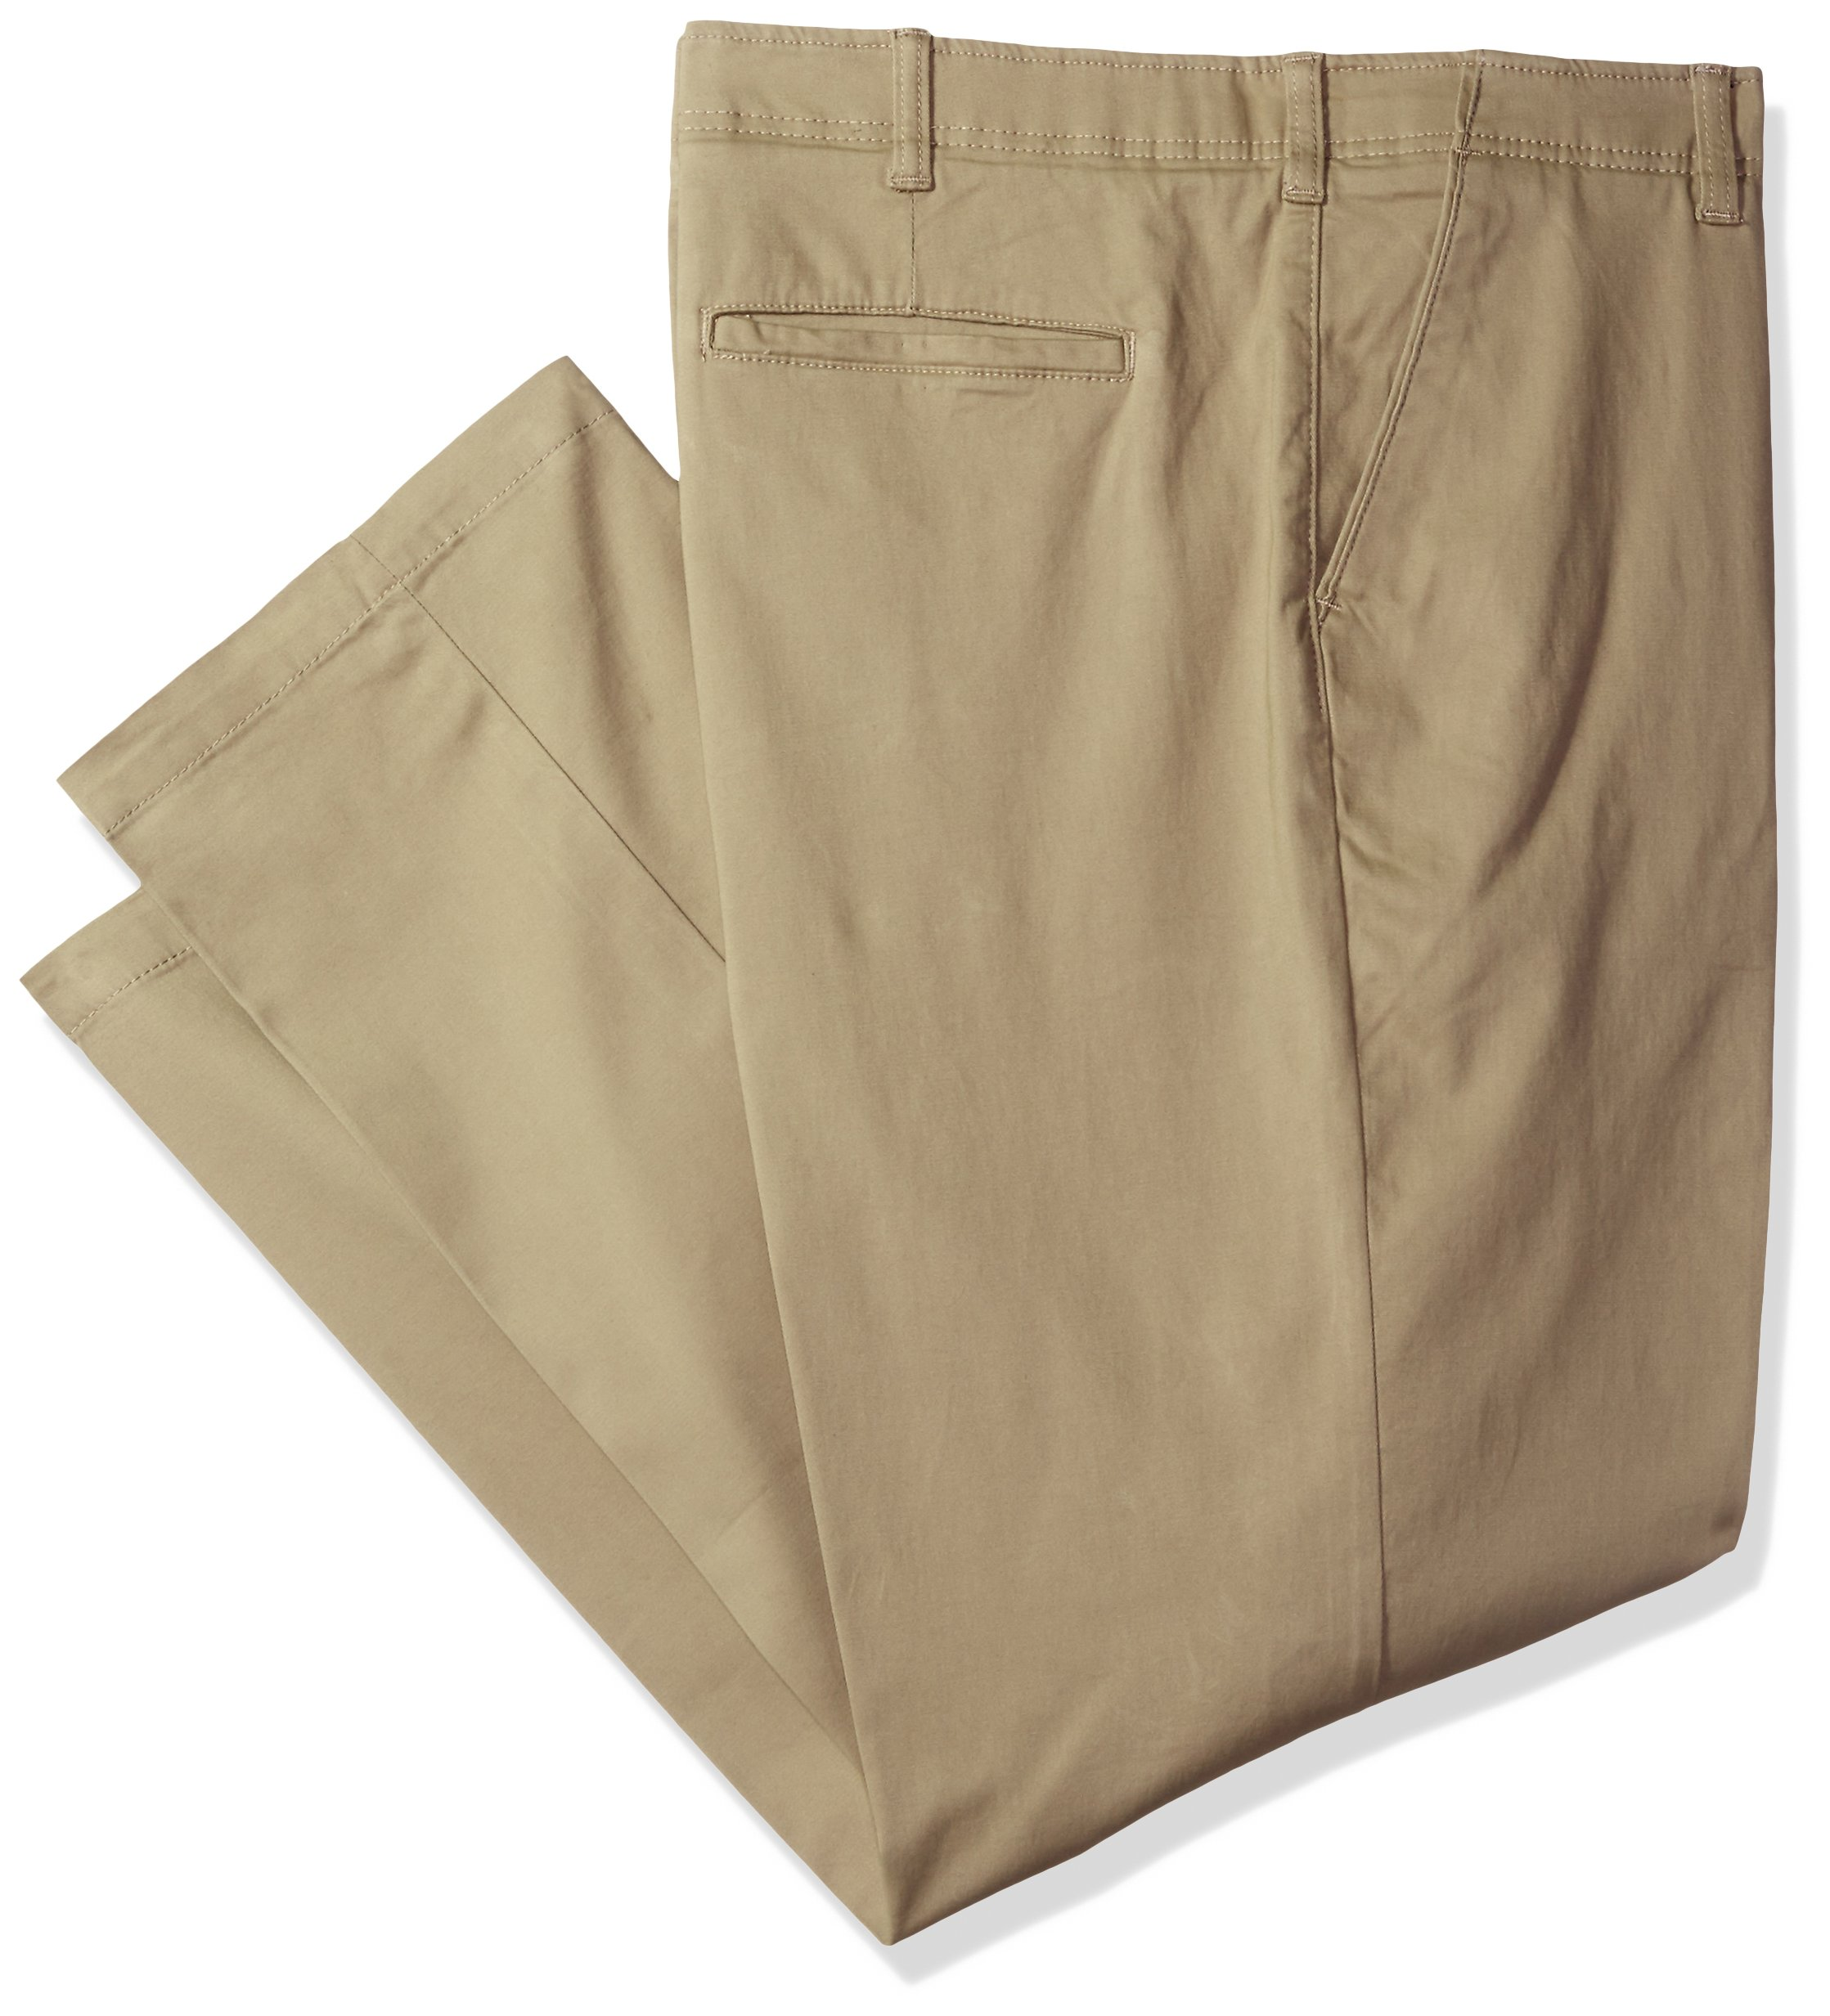 LEE Men's Big and Tall Performance Series Extreme Comfort Pant, Pebble, 48W x 30L